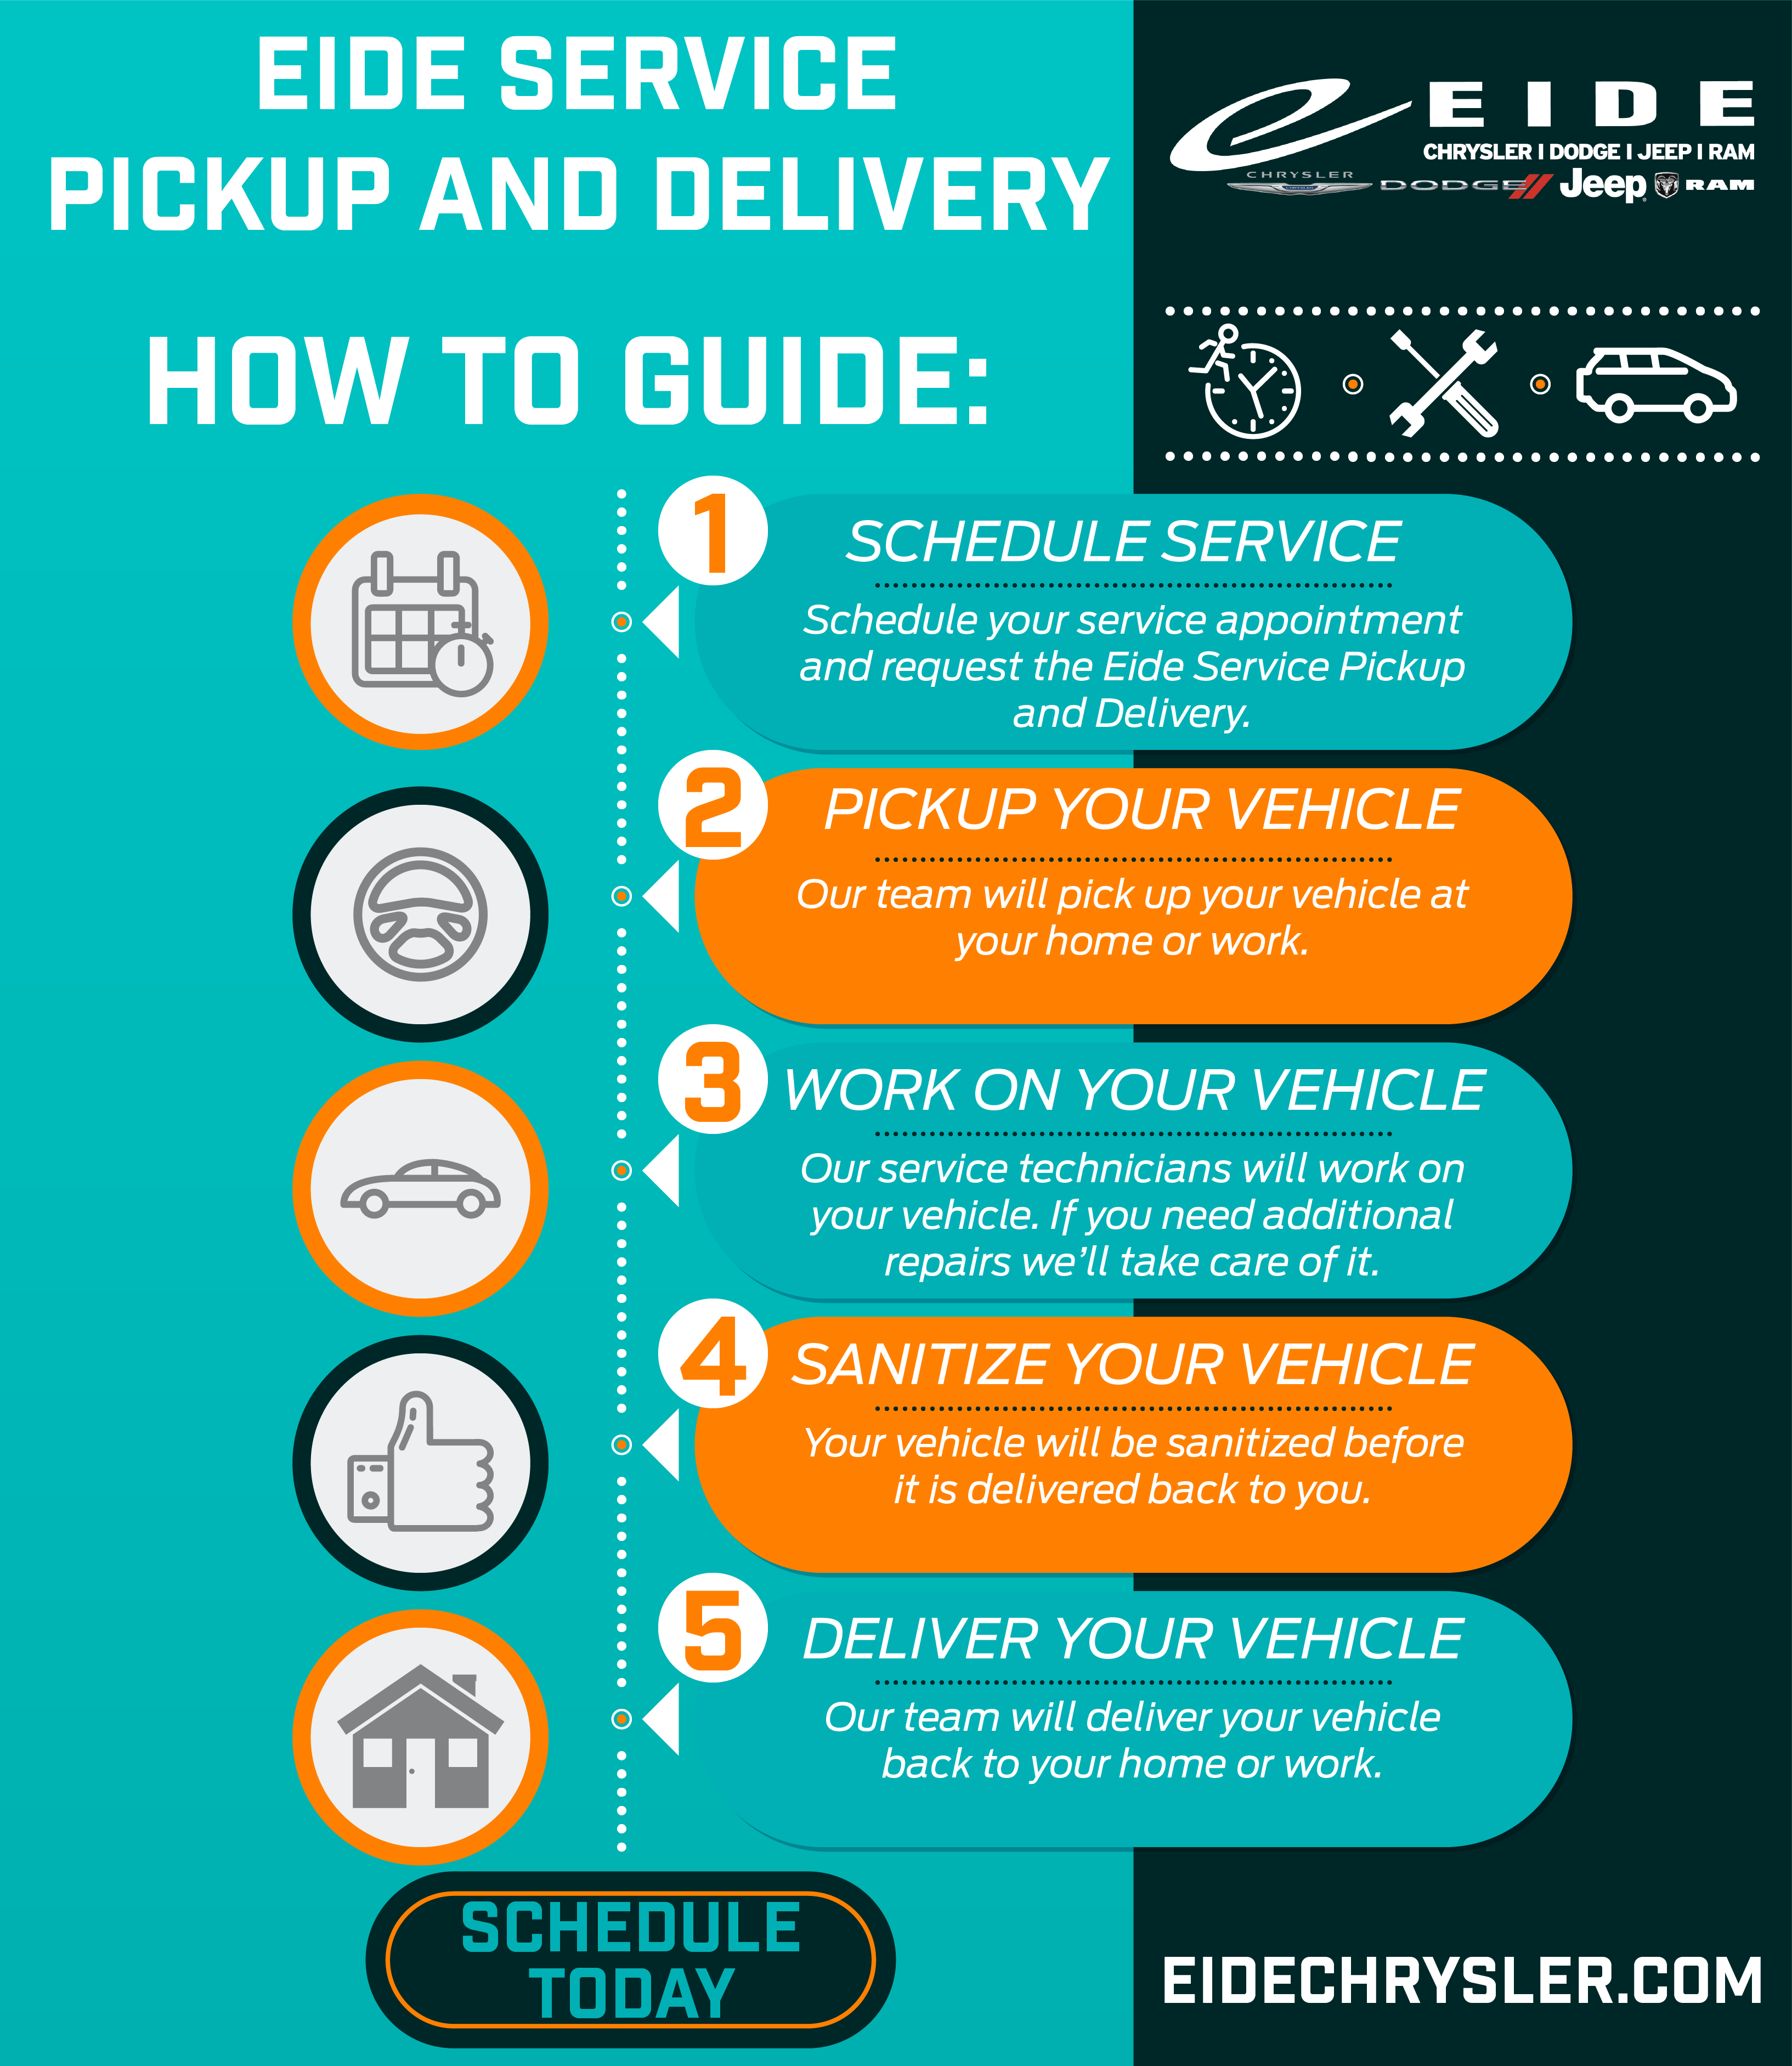 Eide Chrysler Service Pickup and Delivery